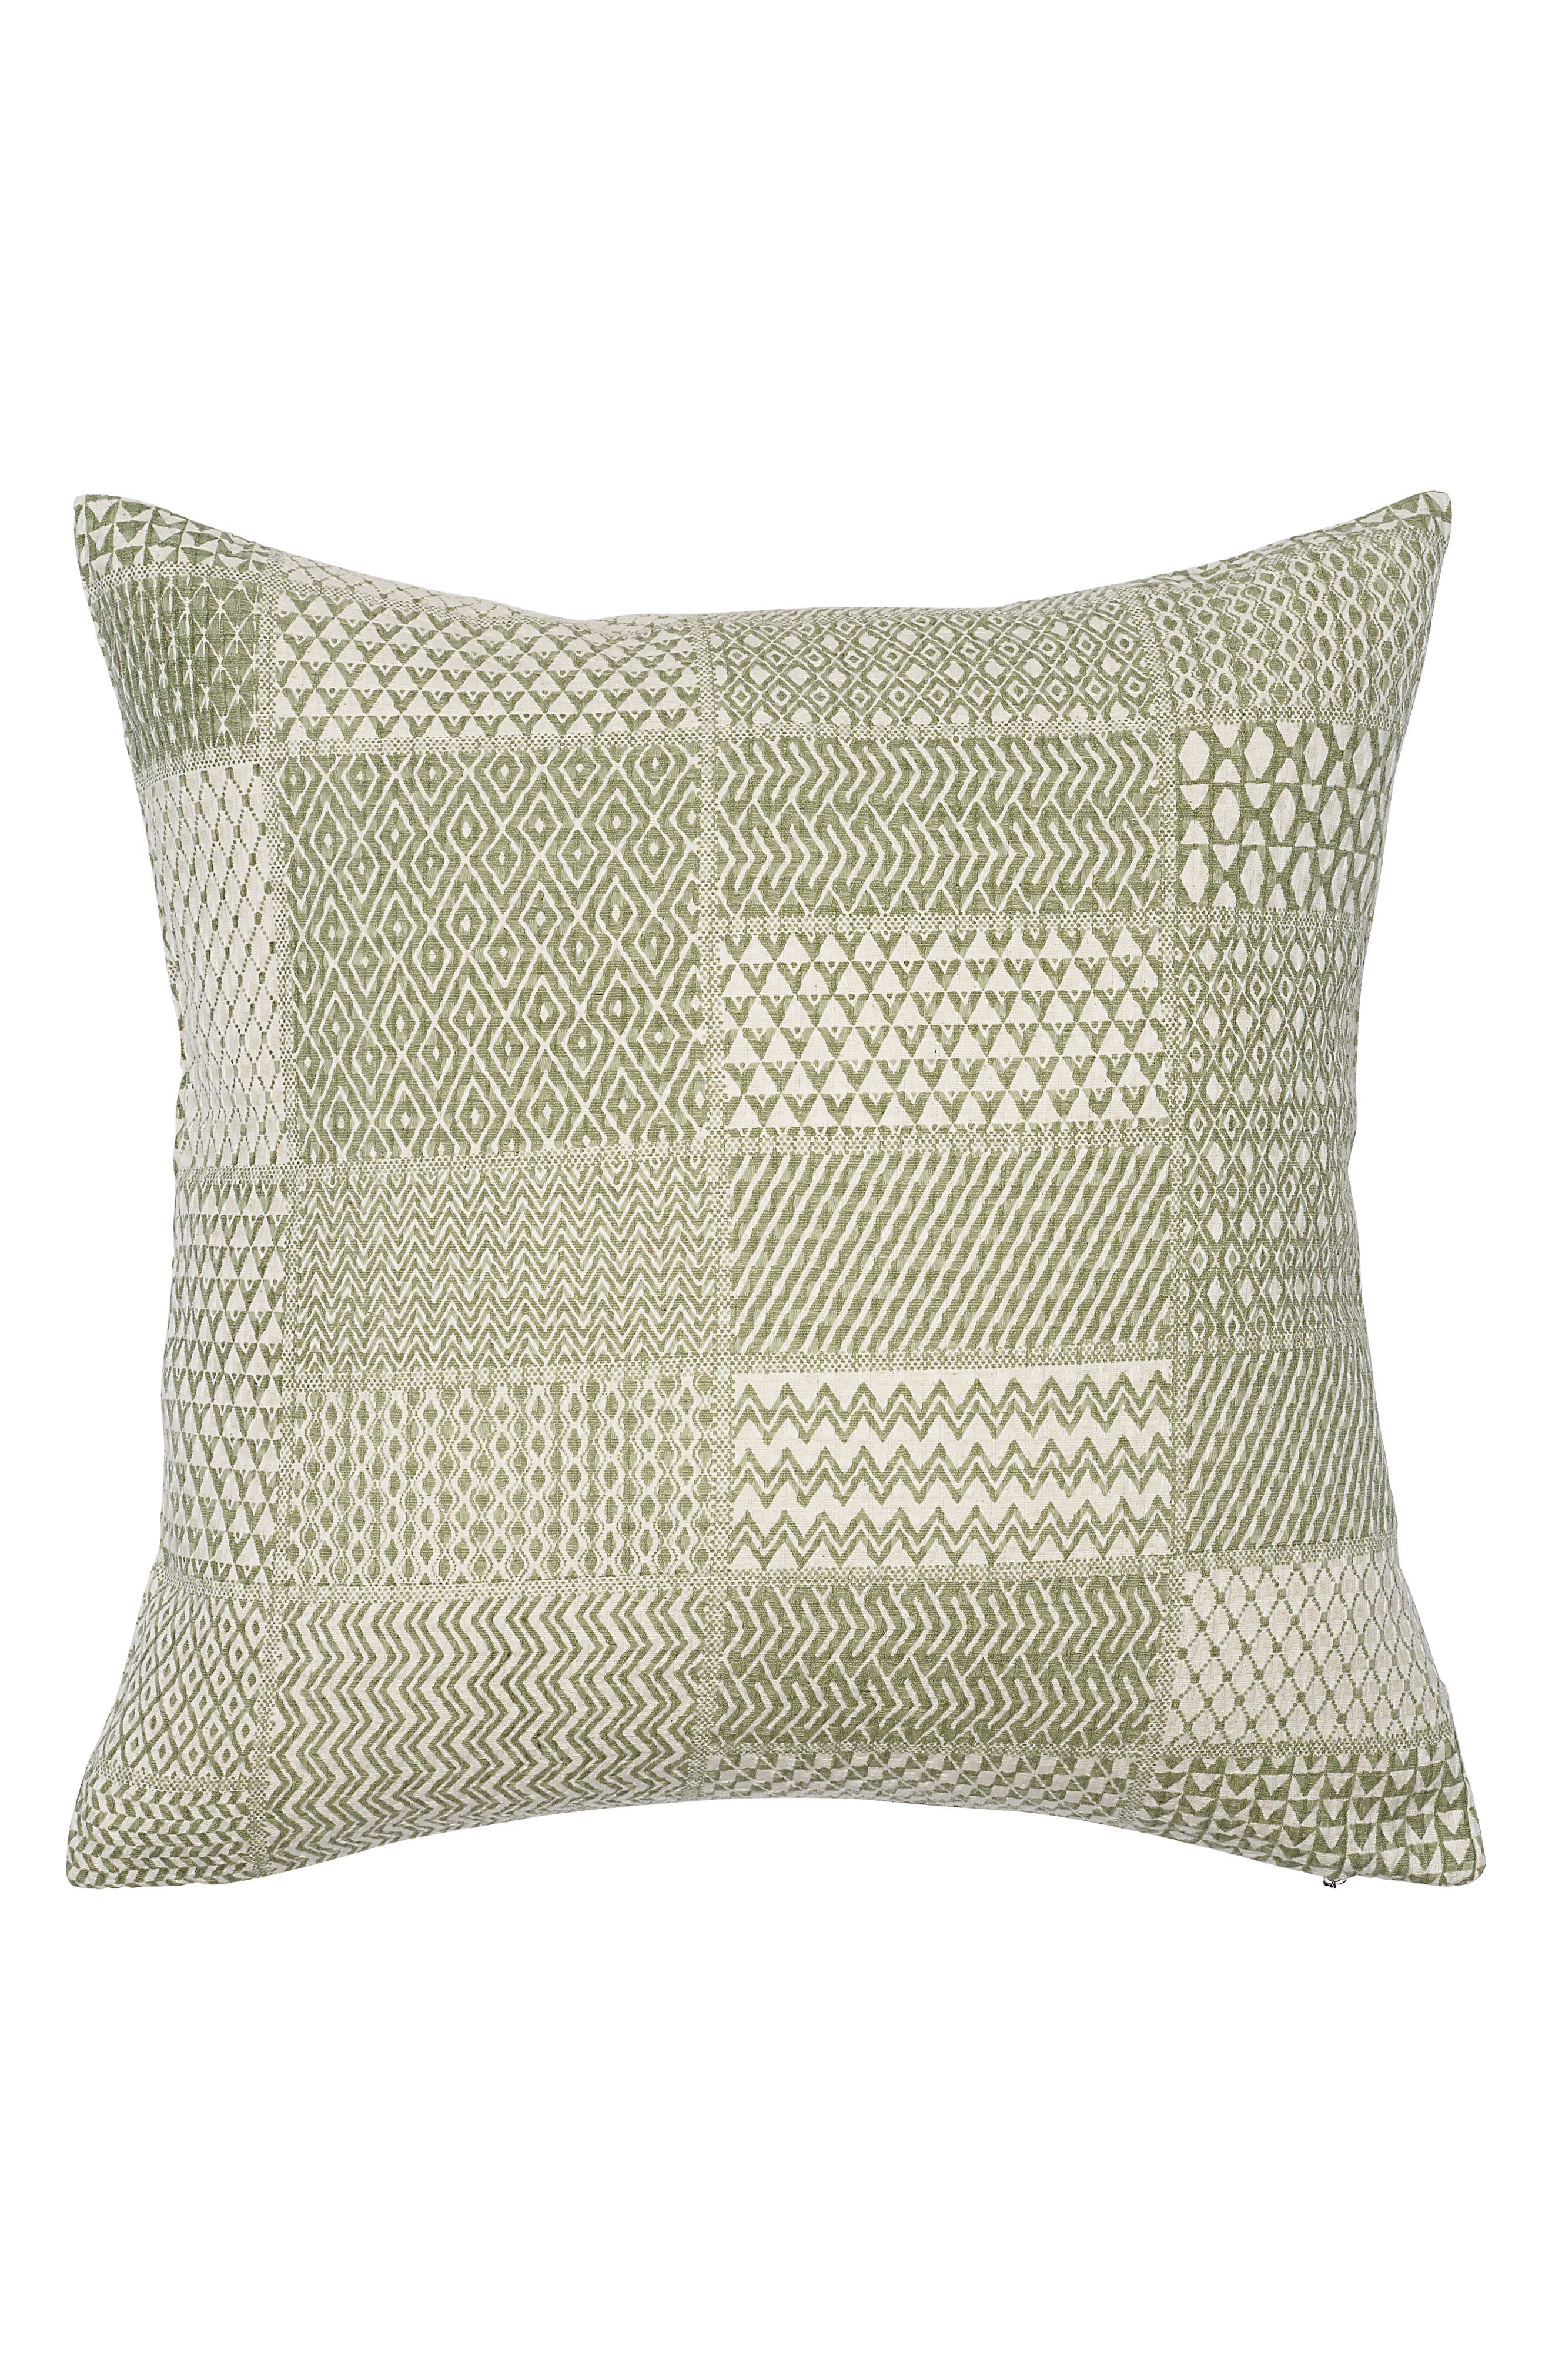 EADIE LIFESTYLE, Tiptoe Scatter Accent Pillow, Main thumbnail 1, color, SAGE/ WHITE